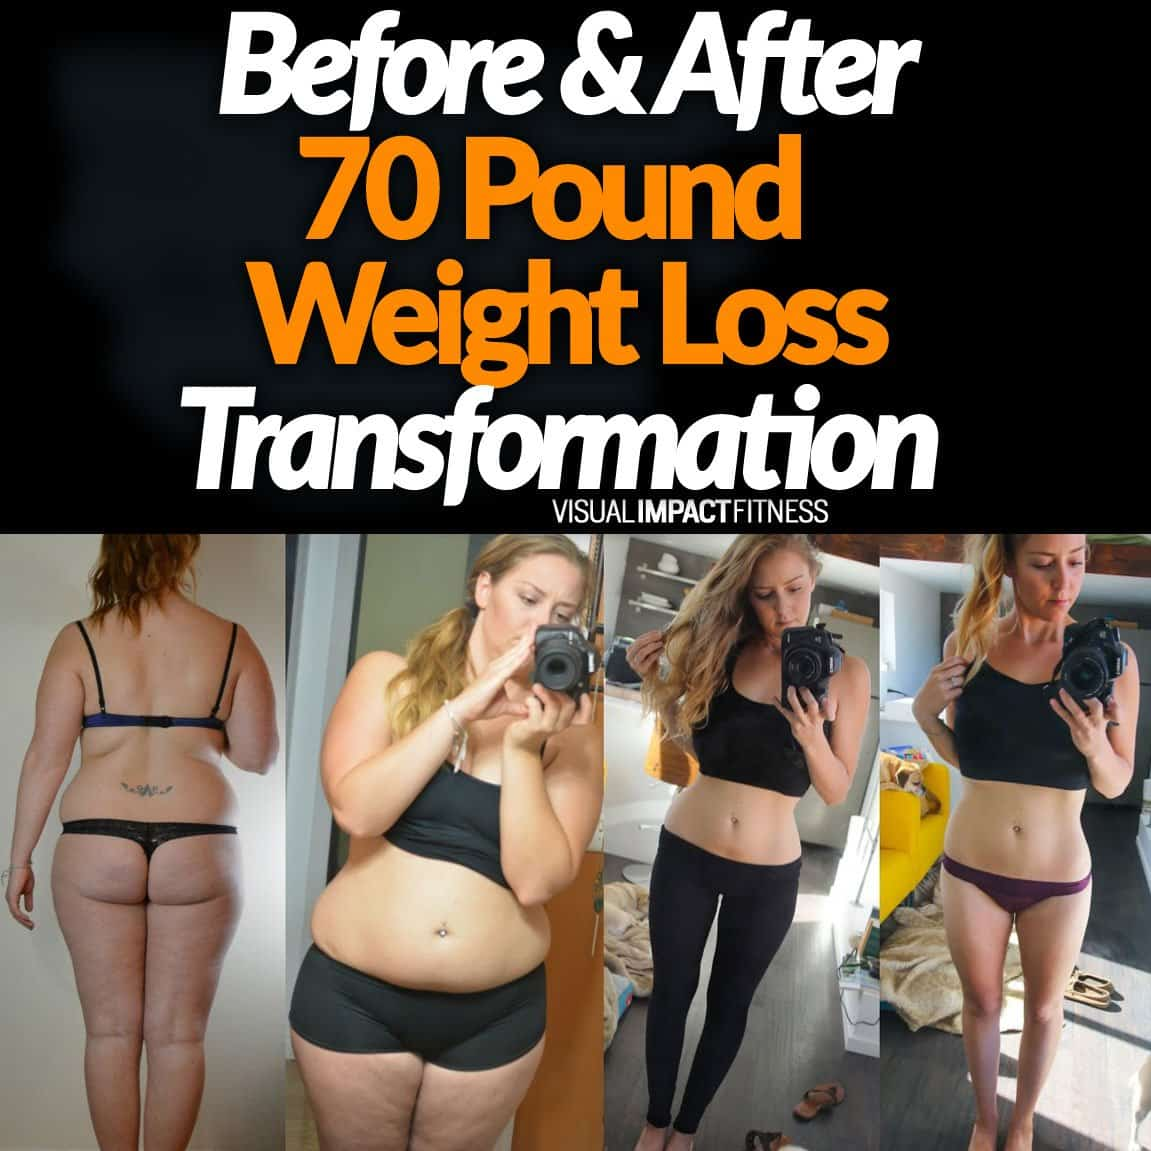 Before & After 70 Pound Weight Loss Transformation